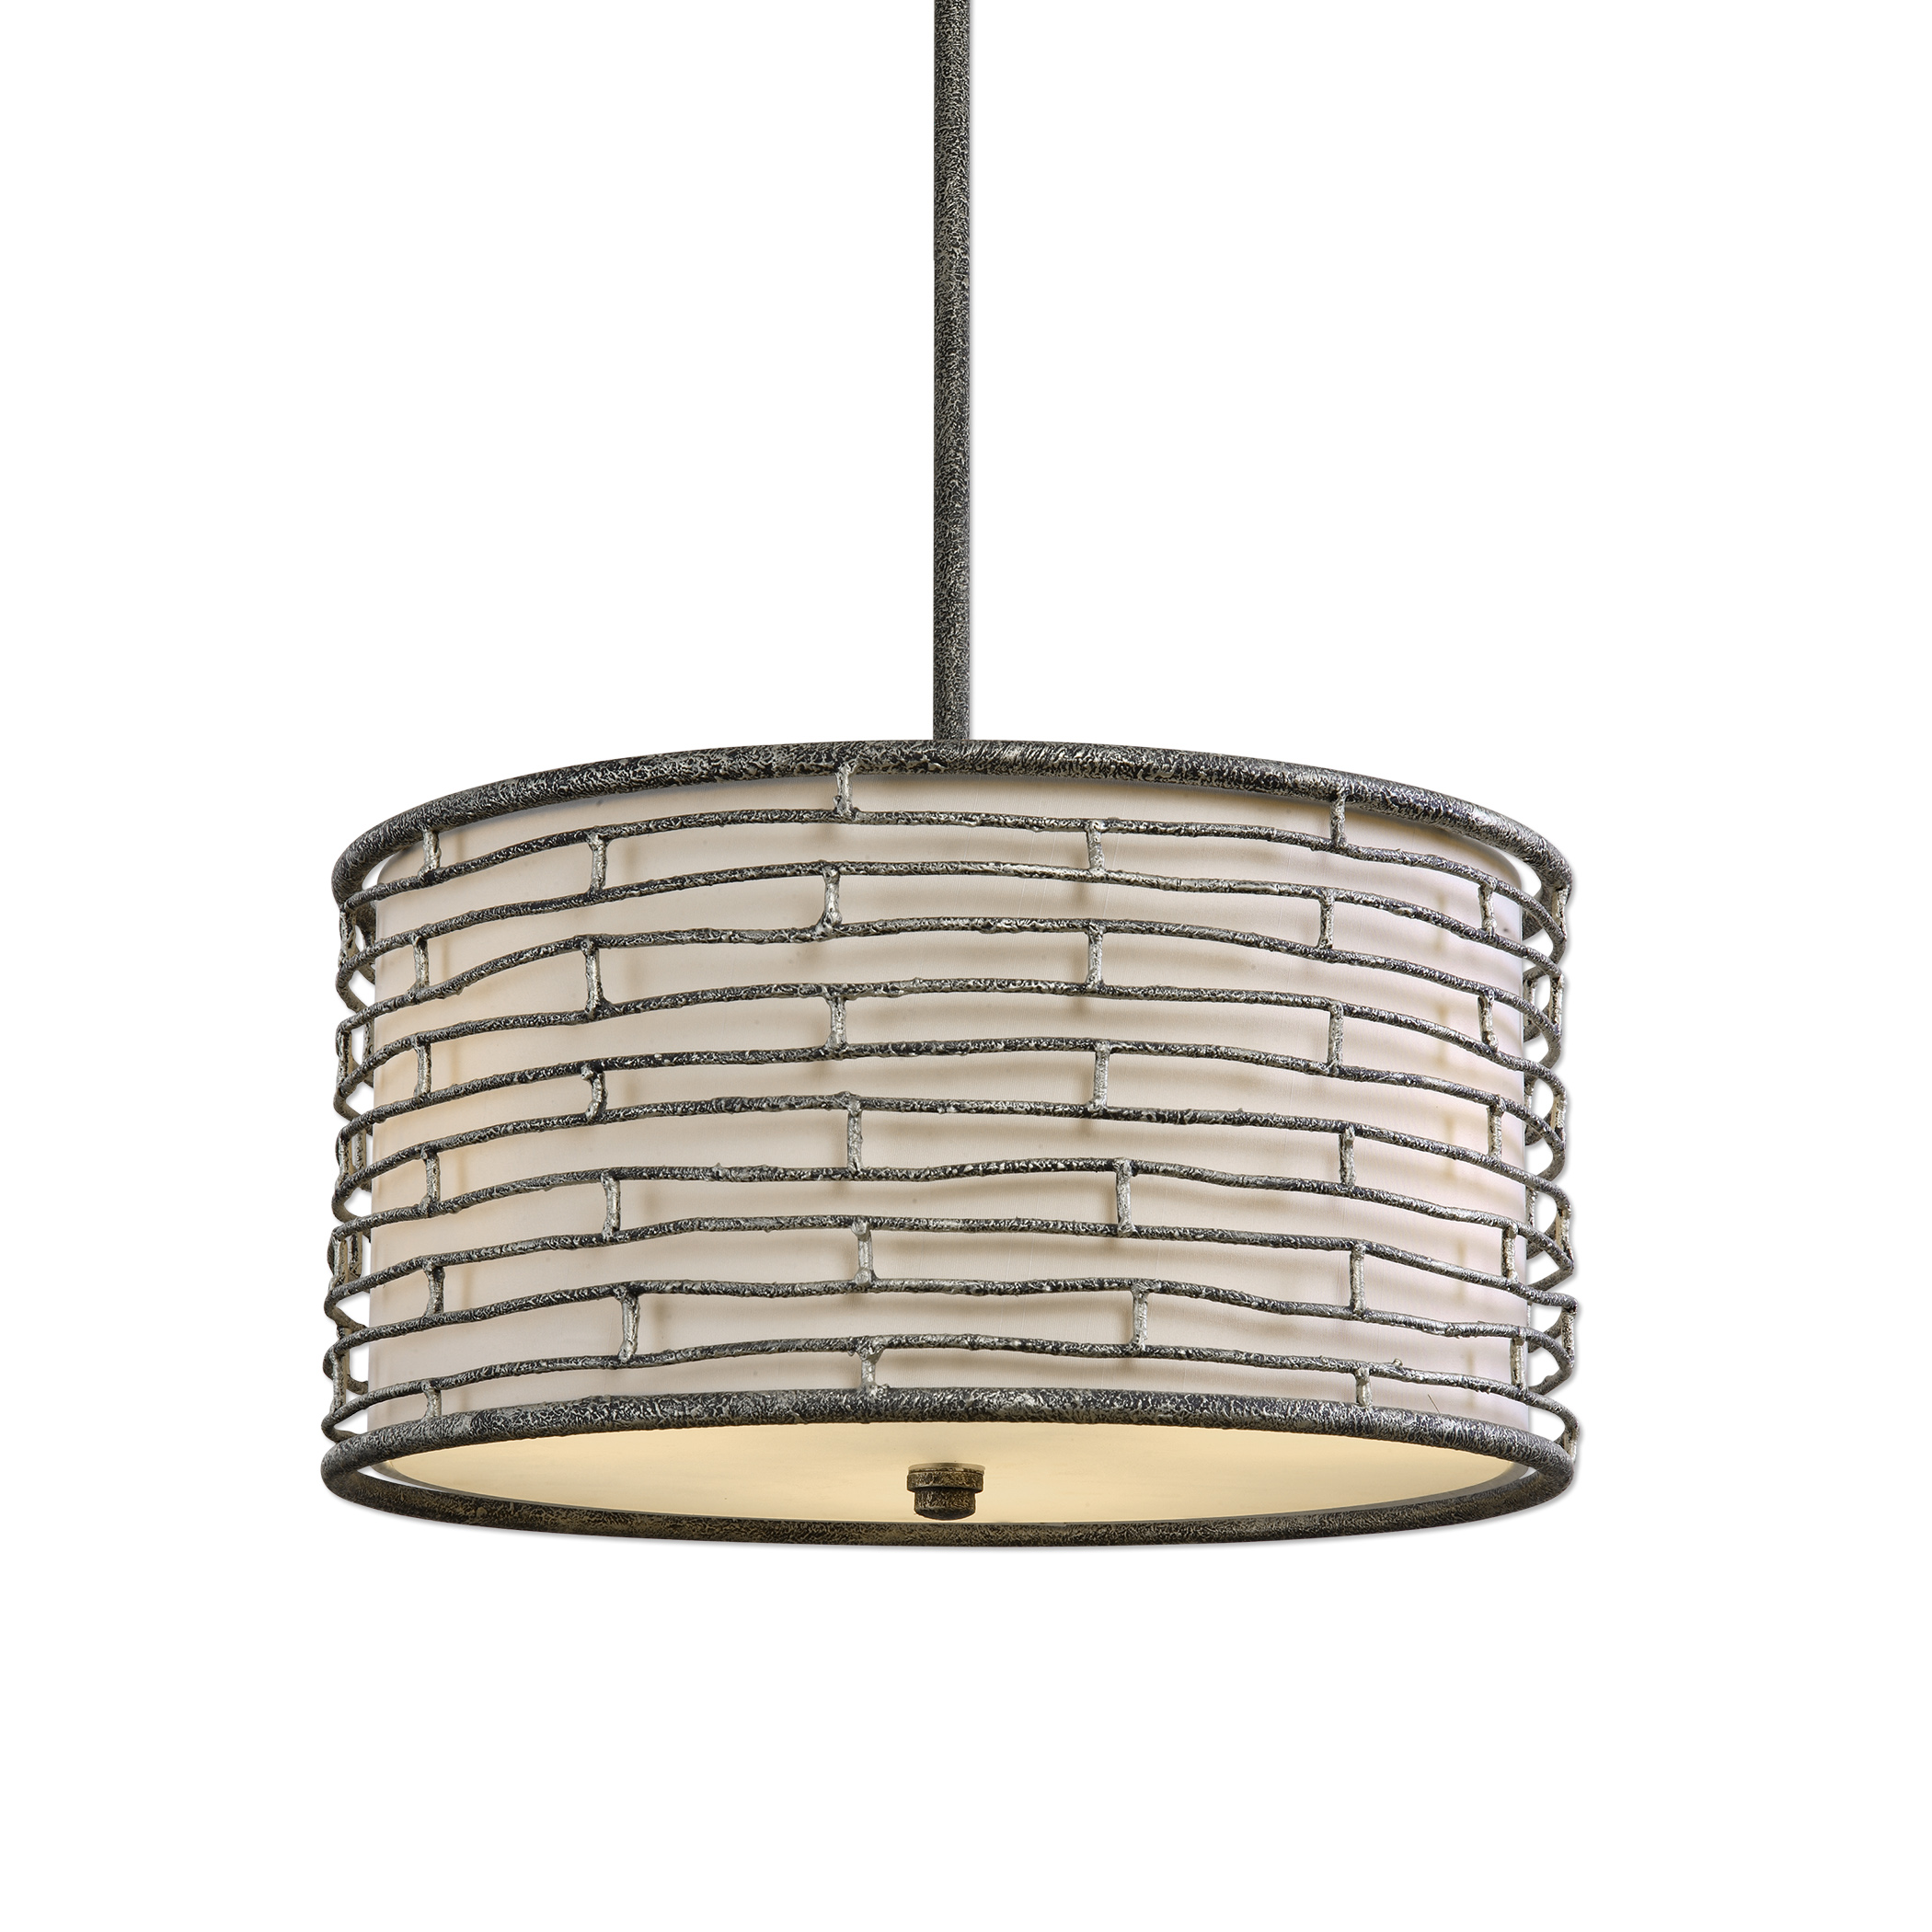 Uttermost Lighting Fixtures Smida 3 Light Rustic Hanging Shade - Item Number: 22071